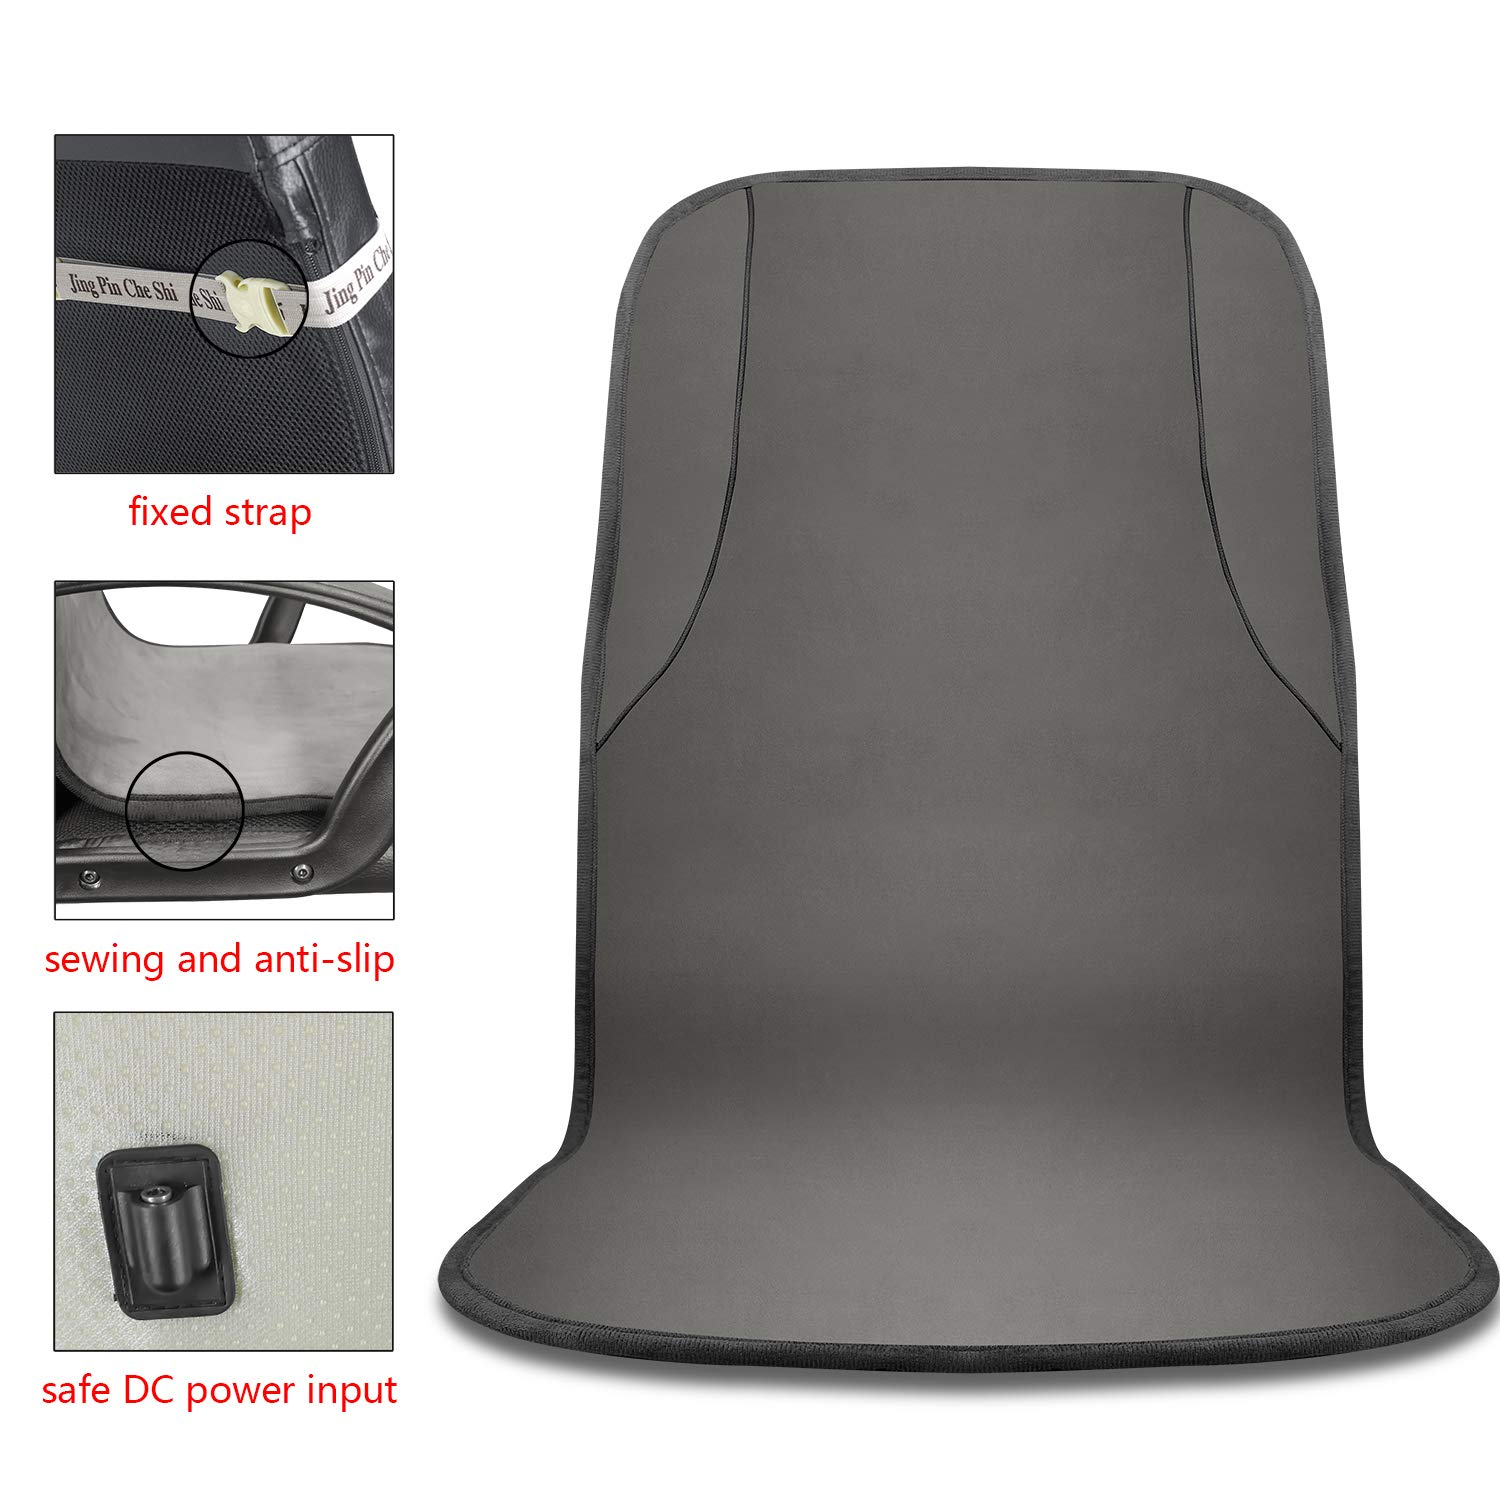 Gray KUPX 24V UL DC Power Safe and Healthy Infrared Zero Radiation Multifunctional Carbon Fibre 30 Seconds Fast Heated Warm Office Chair Mat Back and Seat Cushion Pad Temperature Adjustable